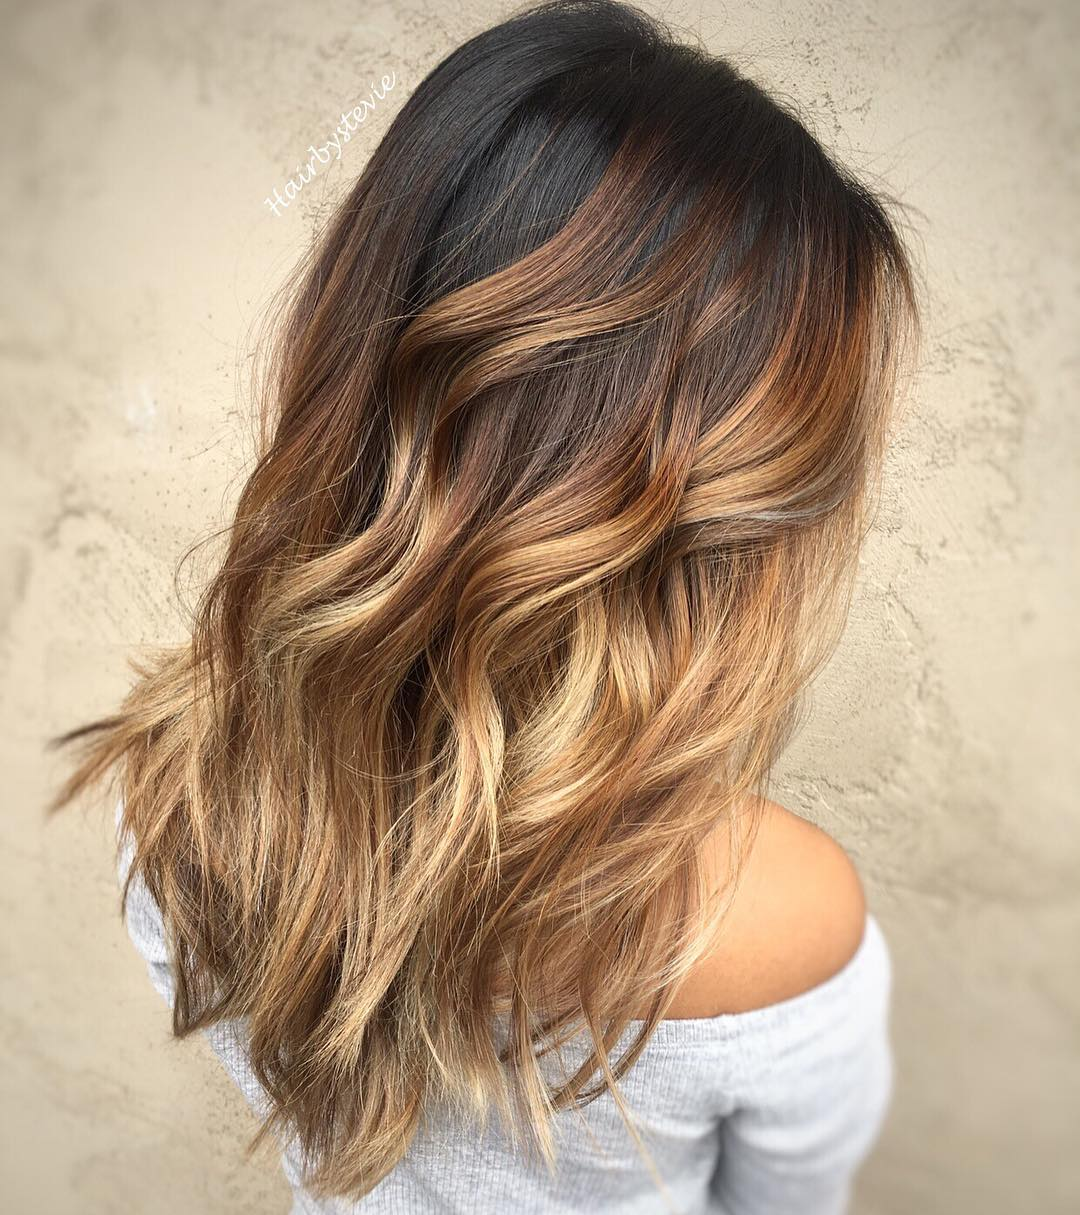 Ombre Hair Brown To Caramel To Blonde Medium Length 20 Sweet Carame...